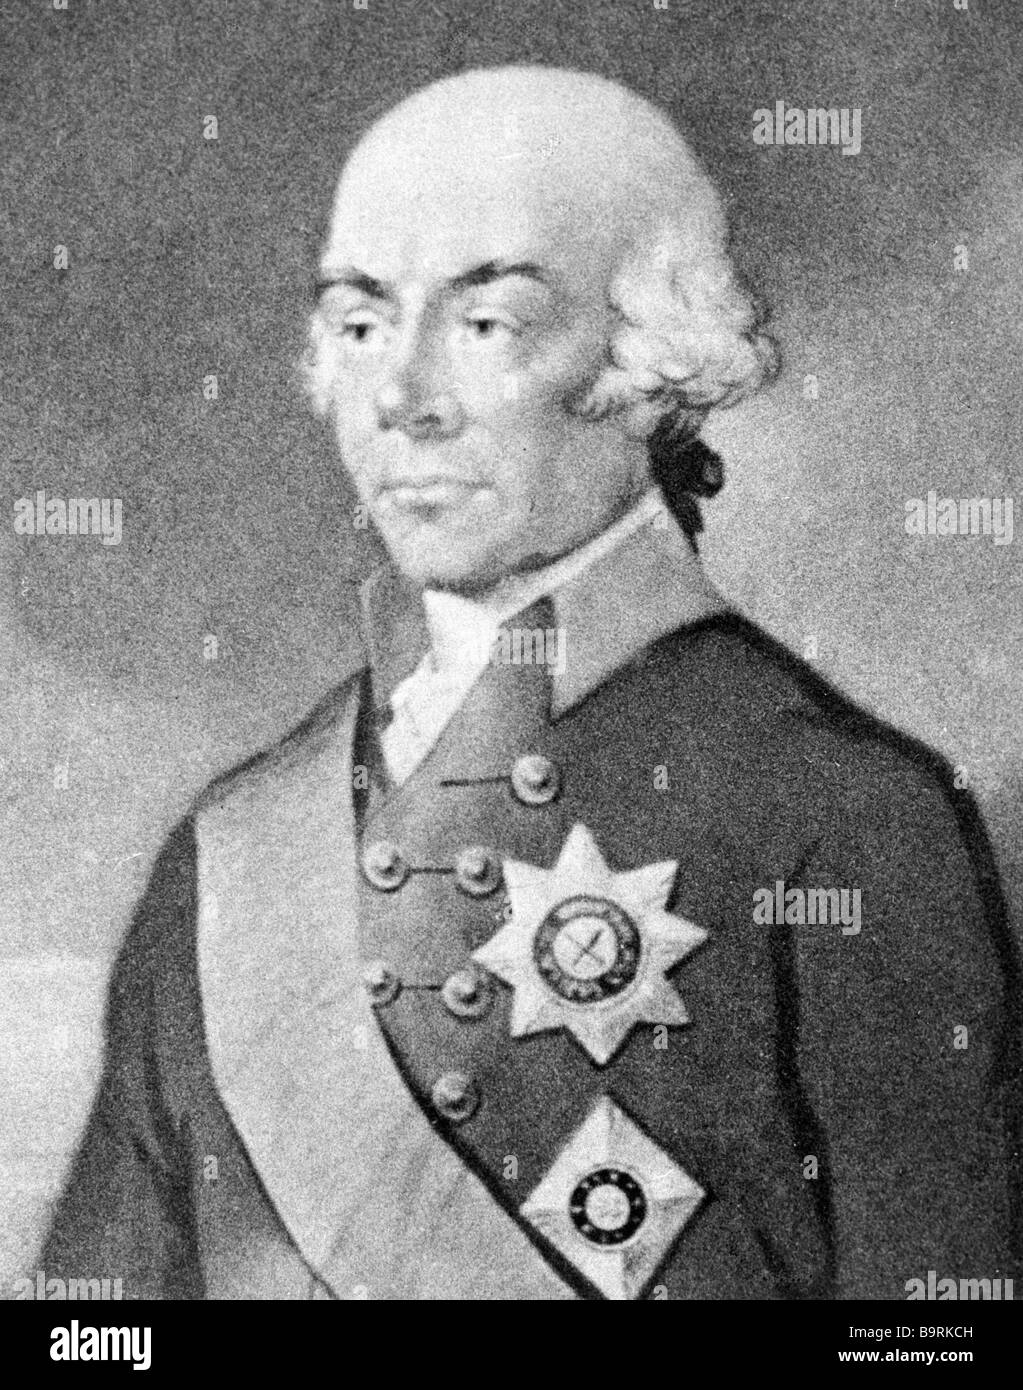 Alexander Suvorov - actor, famous for his role in Carmelite 22